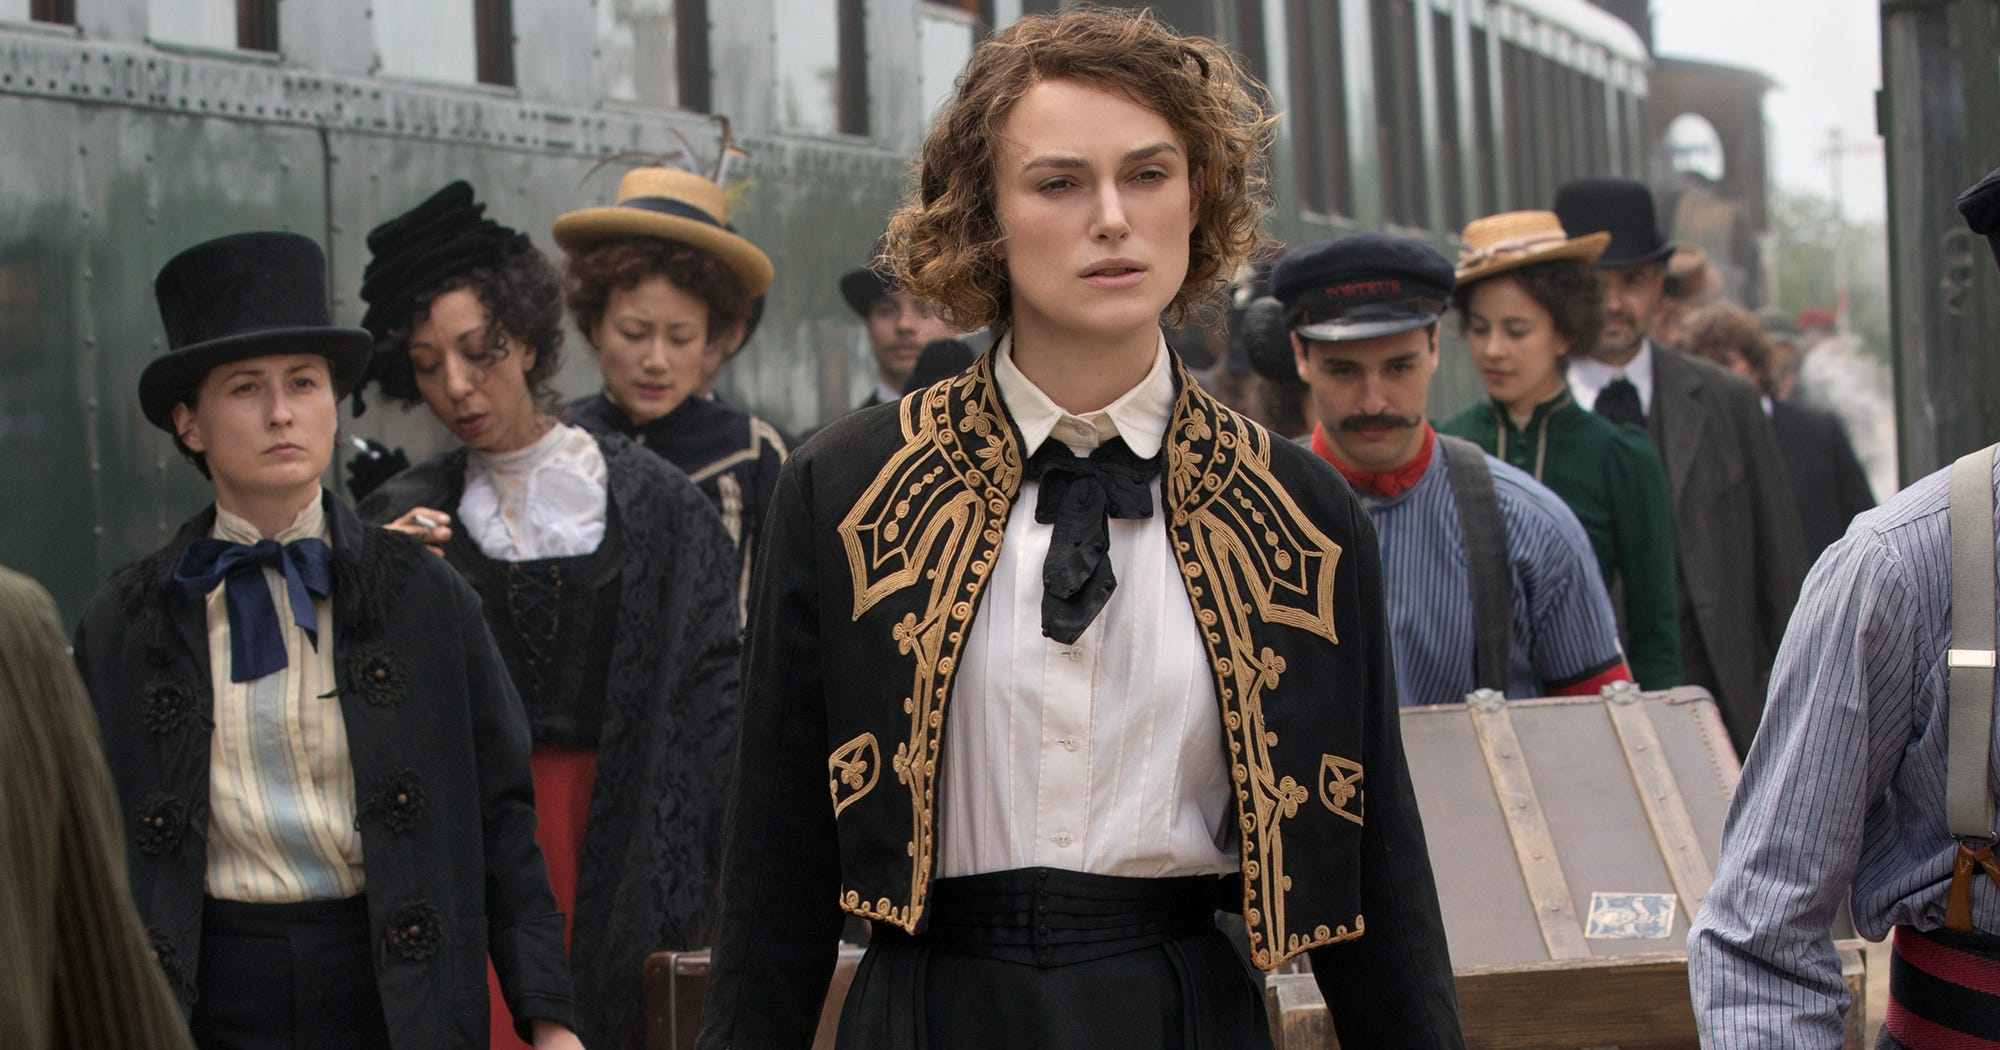 b54915c276 Keira Knightley Movie Colette Is Empowering Woman Story